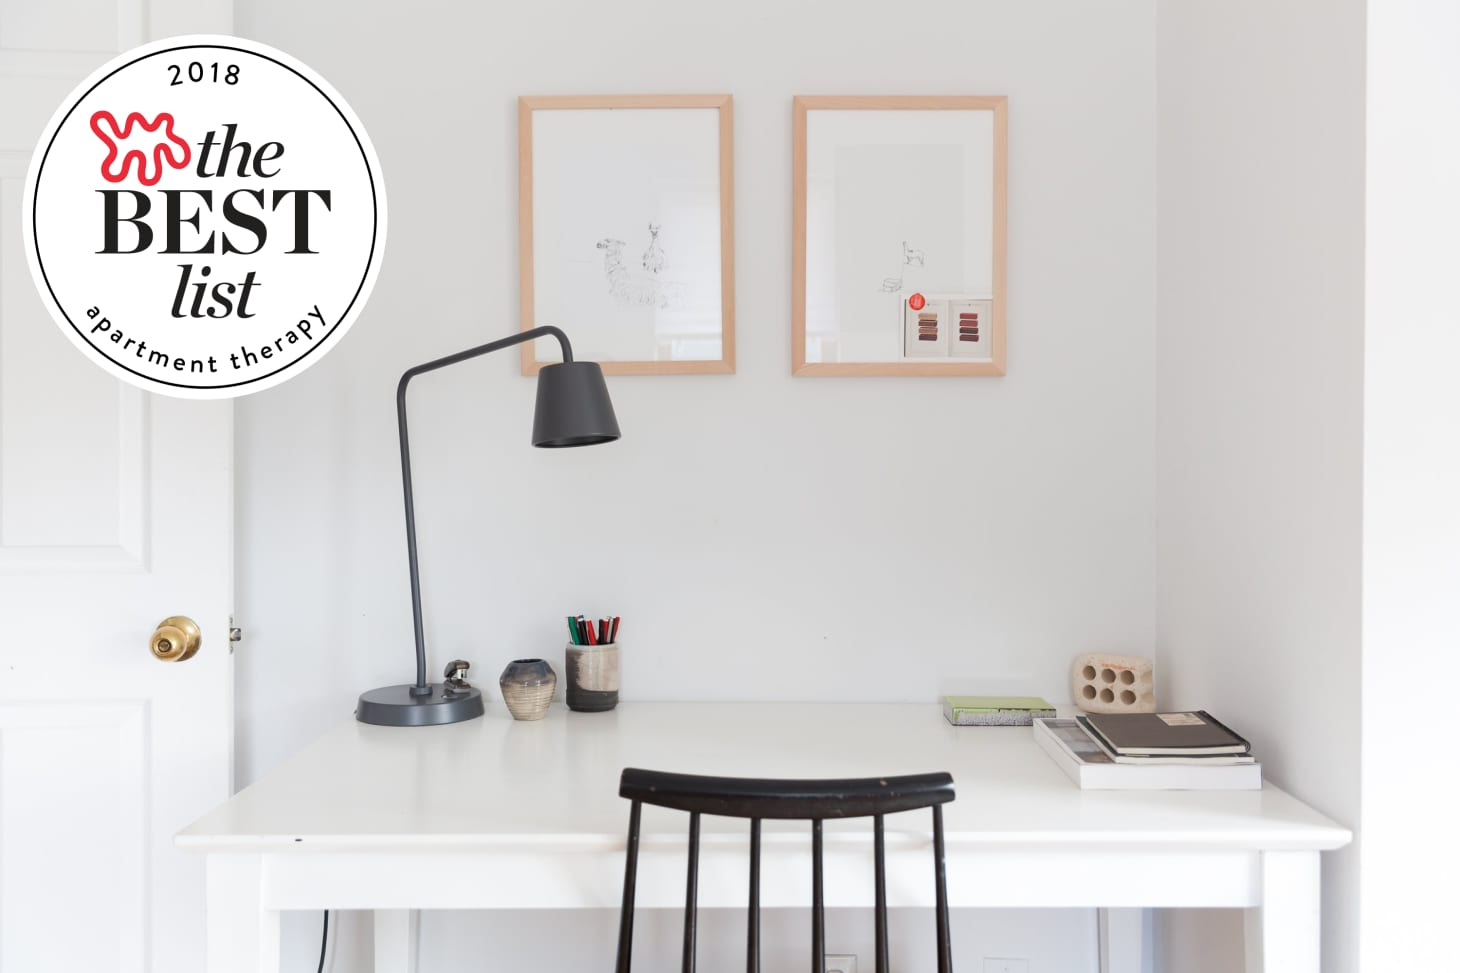 The Best Desks for Small Spaces - Small Space Desks | Apartment Therapy